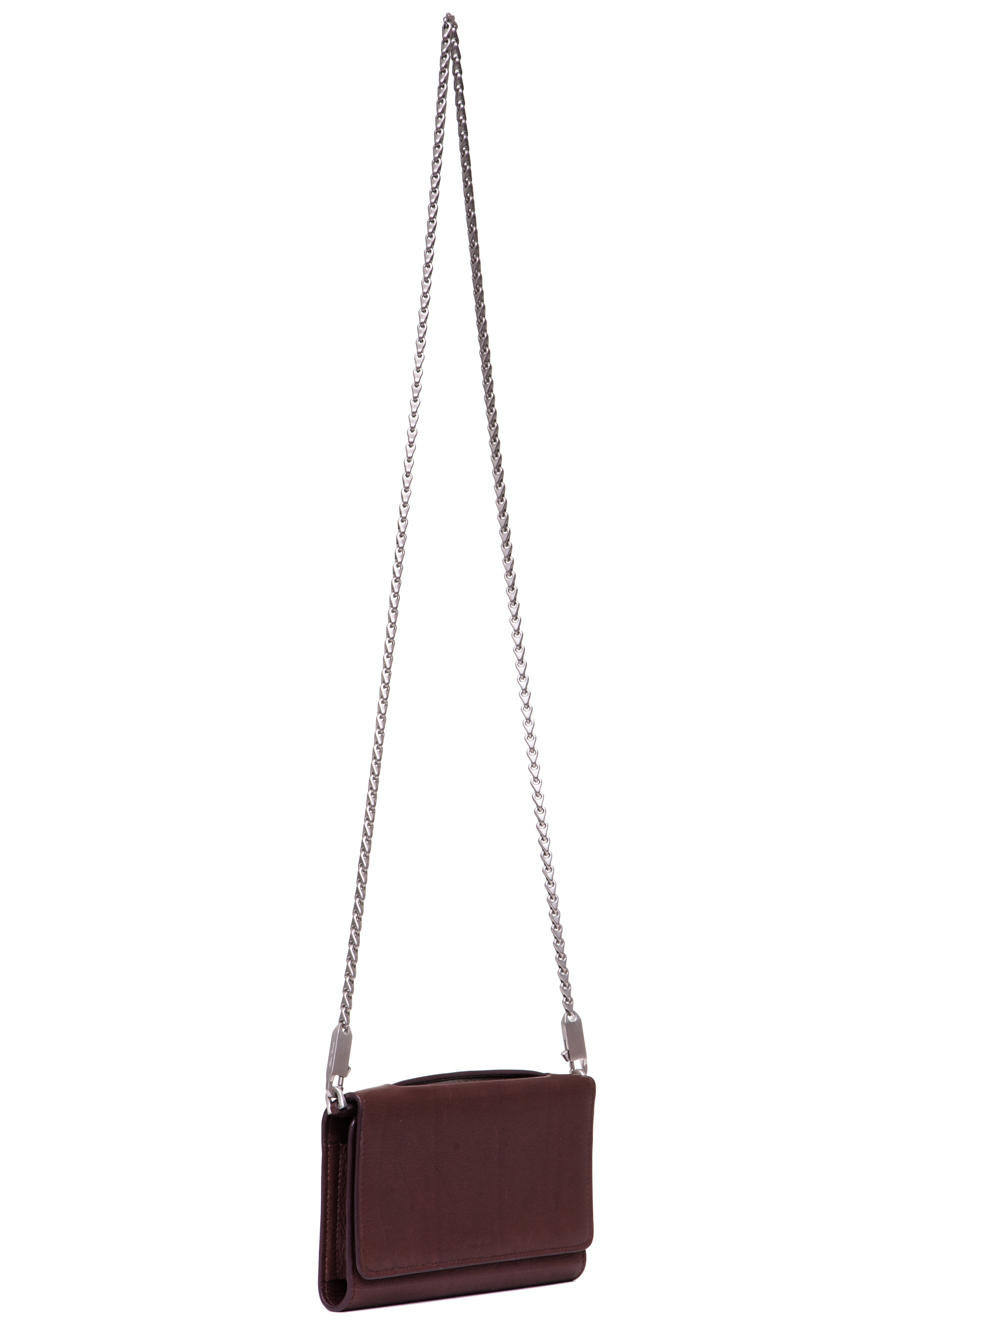 RICK OWENS SS19 BABEL PURSE WALLET IN BLOOD BROWN  CALF LEATHER